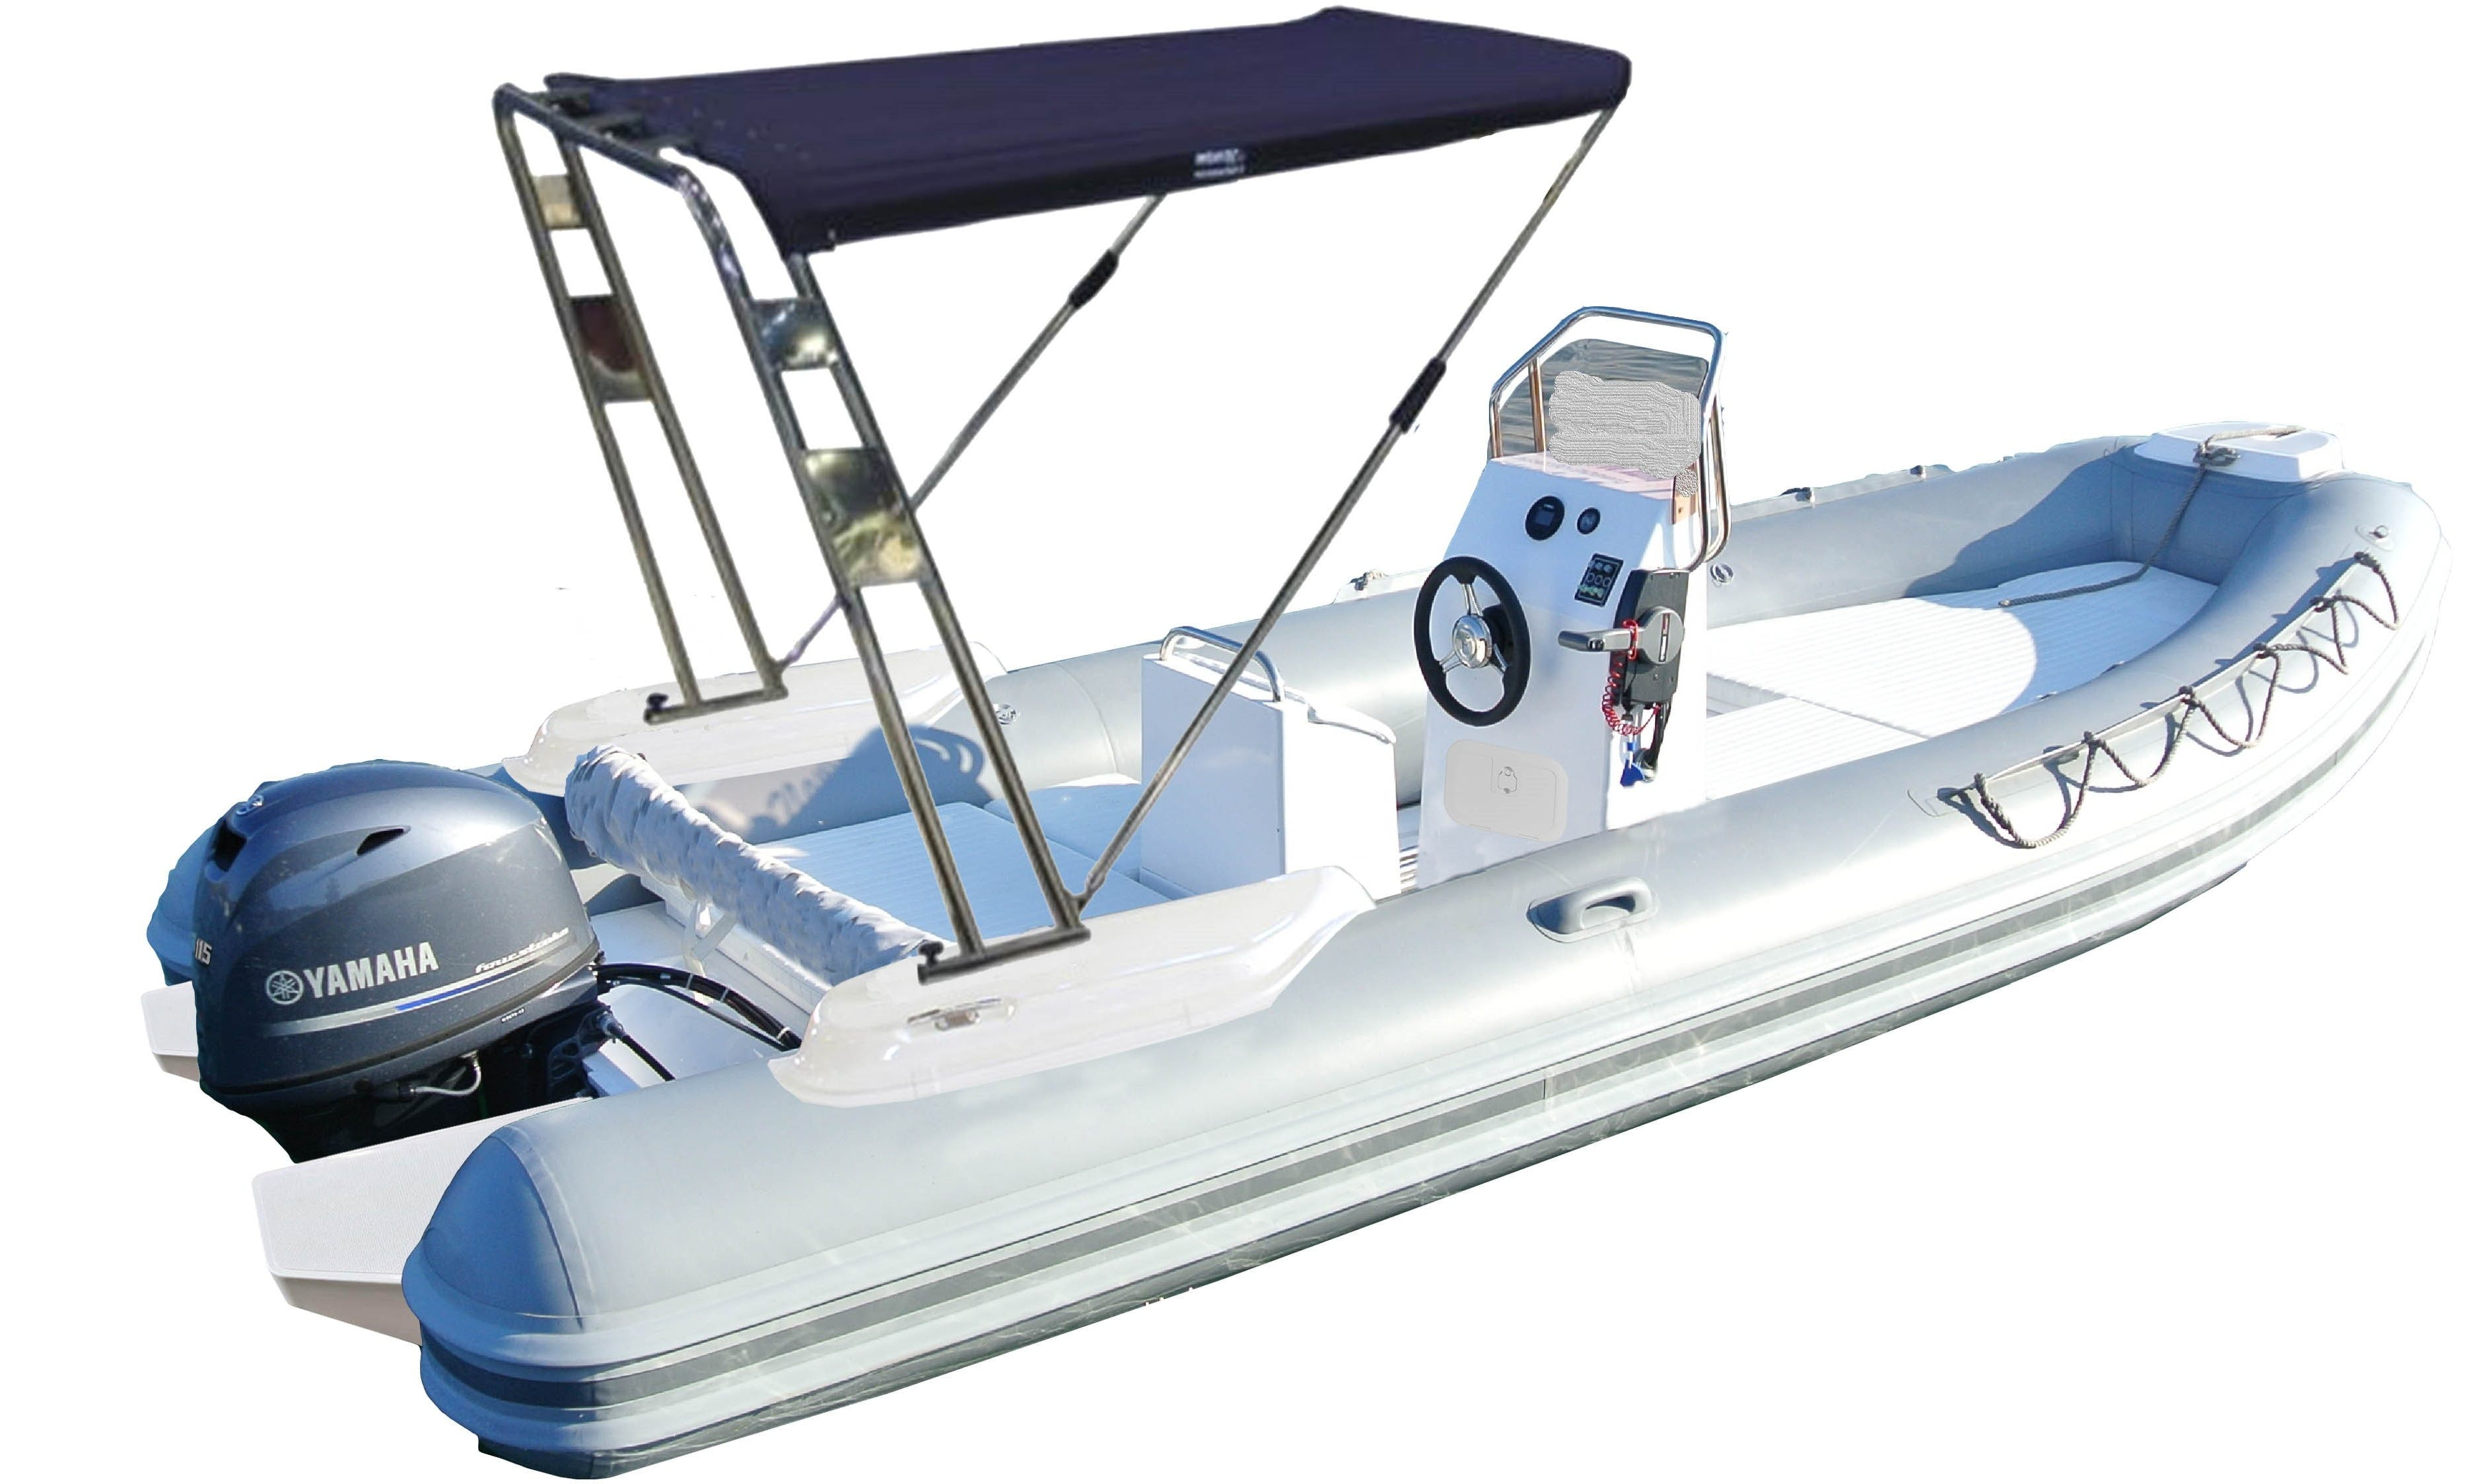 Hire this Expo King inflatable boat in Cannigione